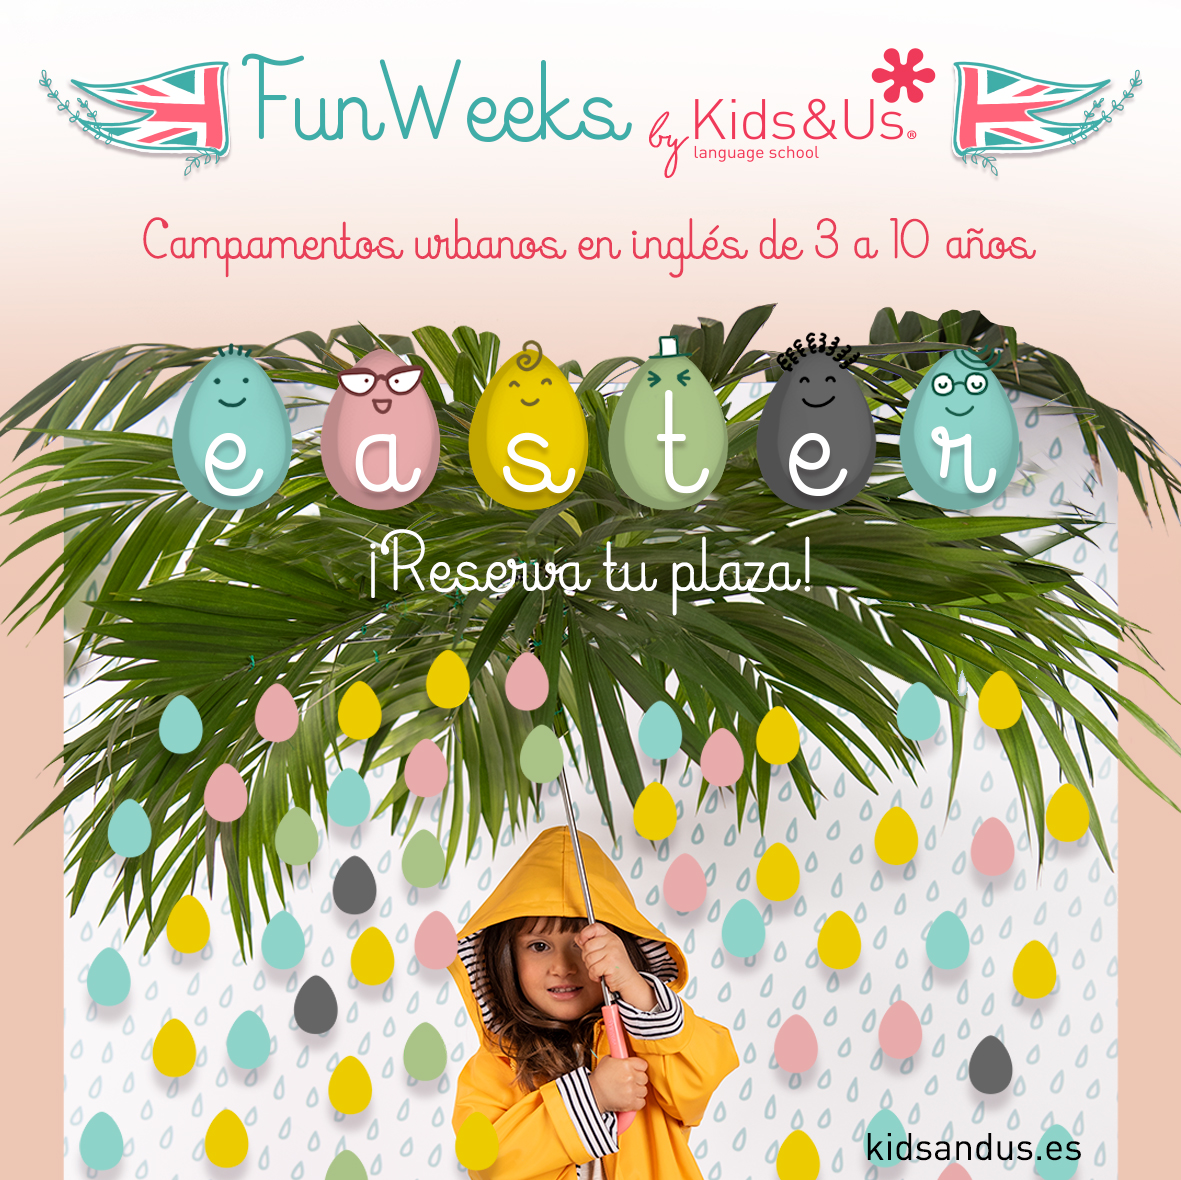 JA ESTÀ AQUÍ LA NOSTRA INCREIBLE FUN WEEK EASTER!